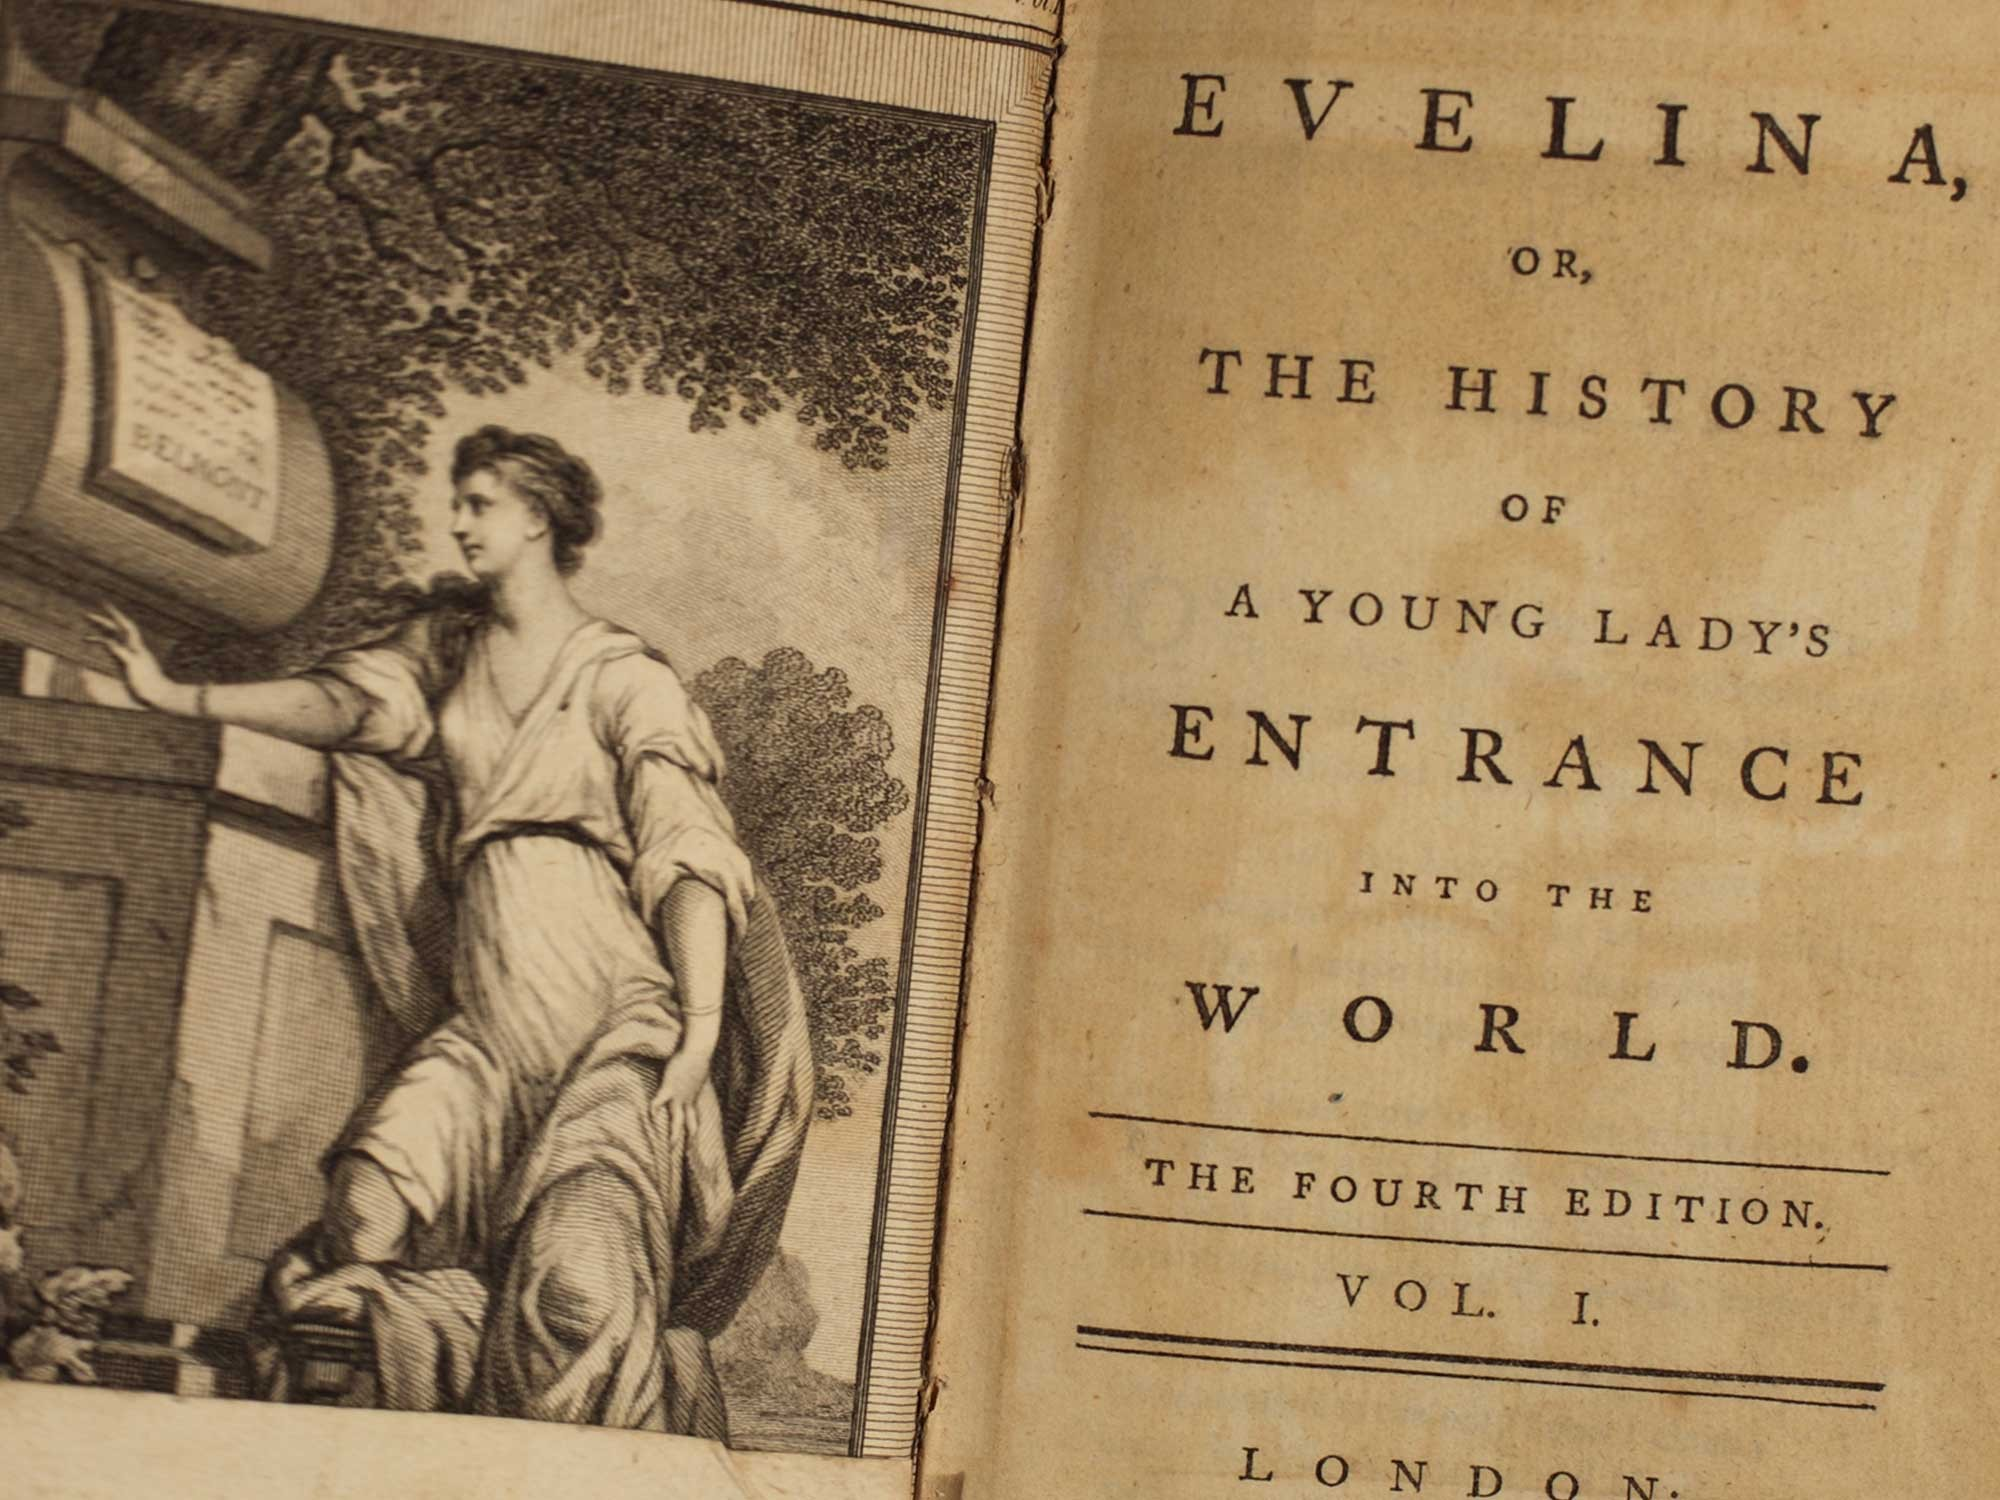 The title page from the first edition of Fanny Burney's book Evelina